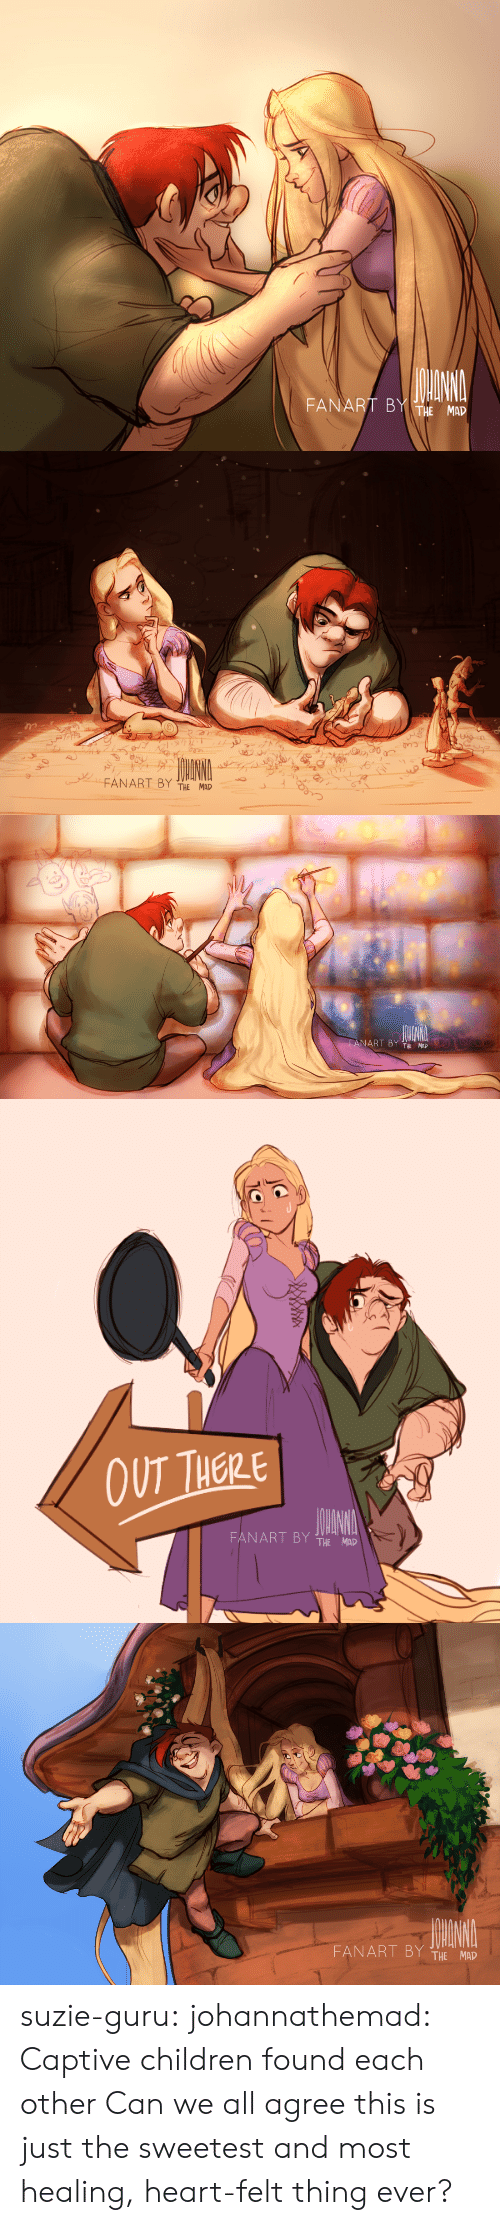 captive: FANART BY MAD   ANART BY THE MAD   OUT THERE  FANART BY THE MAD   THE MAD suzie-guru: johannathemad:   Captive children found each other   Can we all agree this is just the sweetest and most healing, heart-felt thing ever?